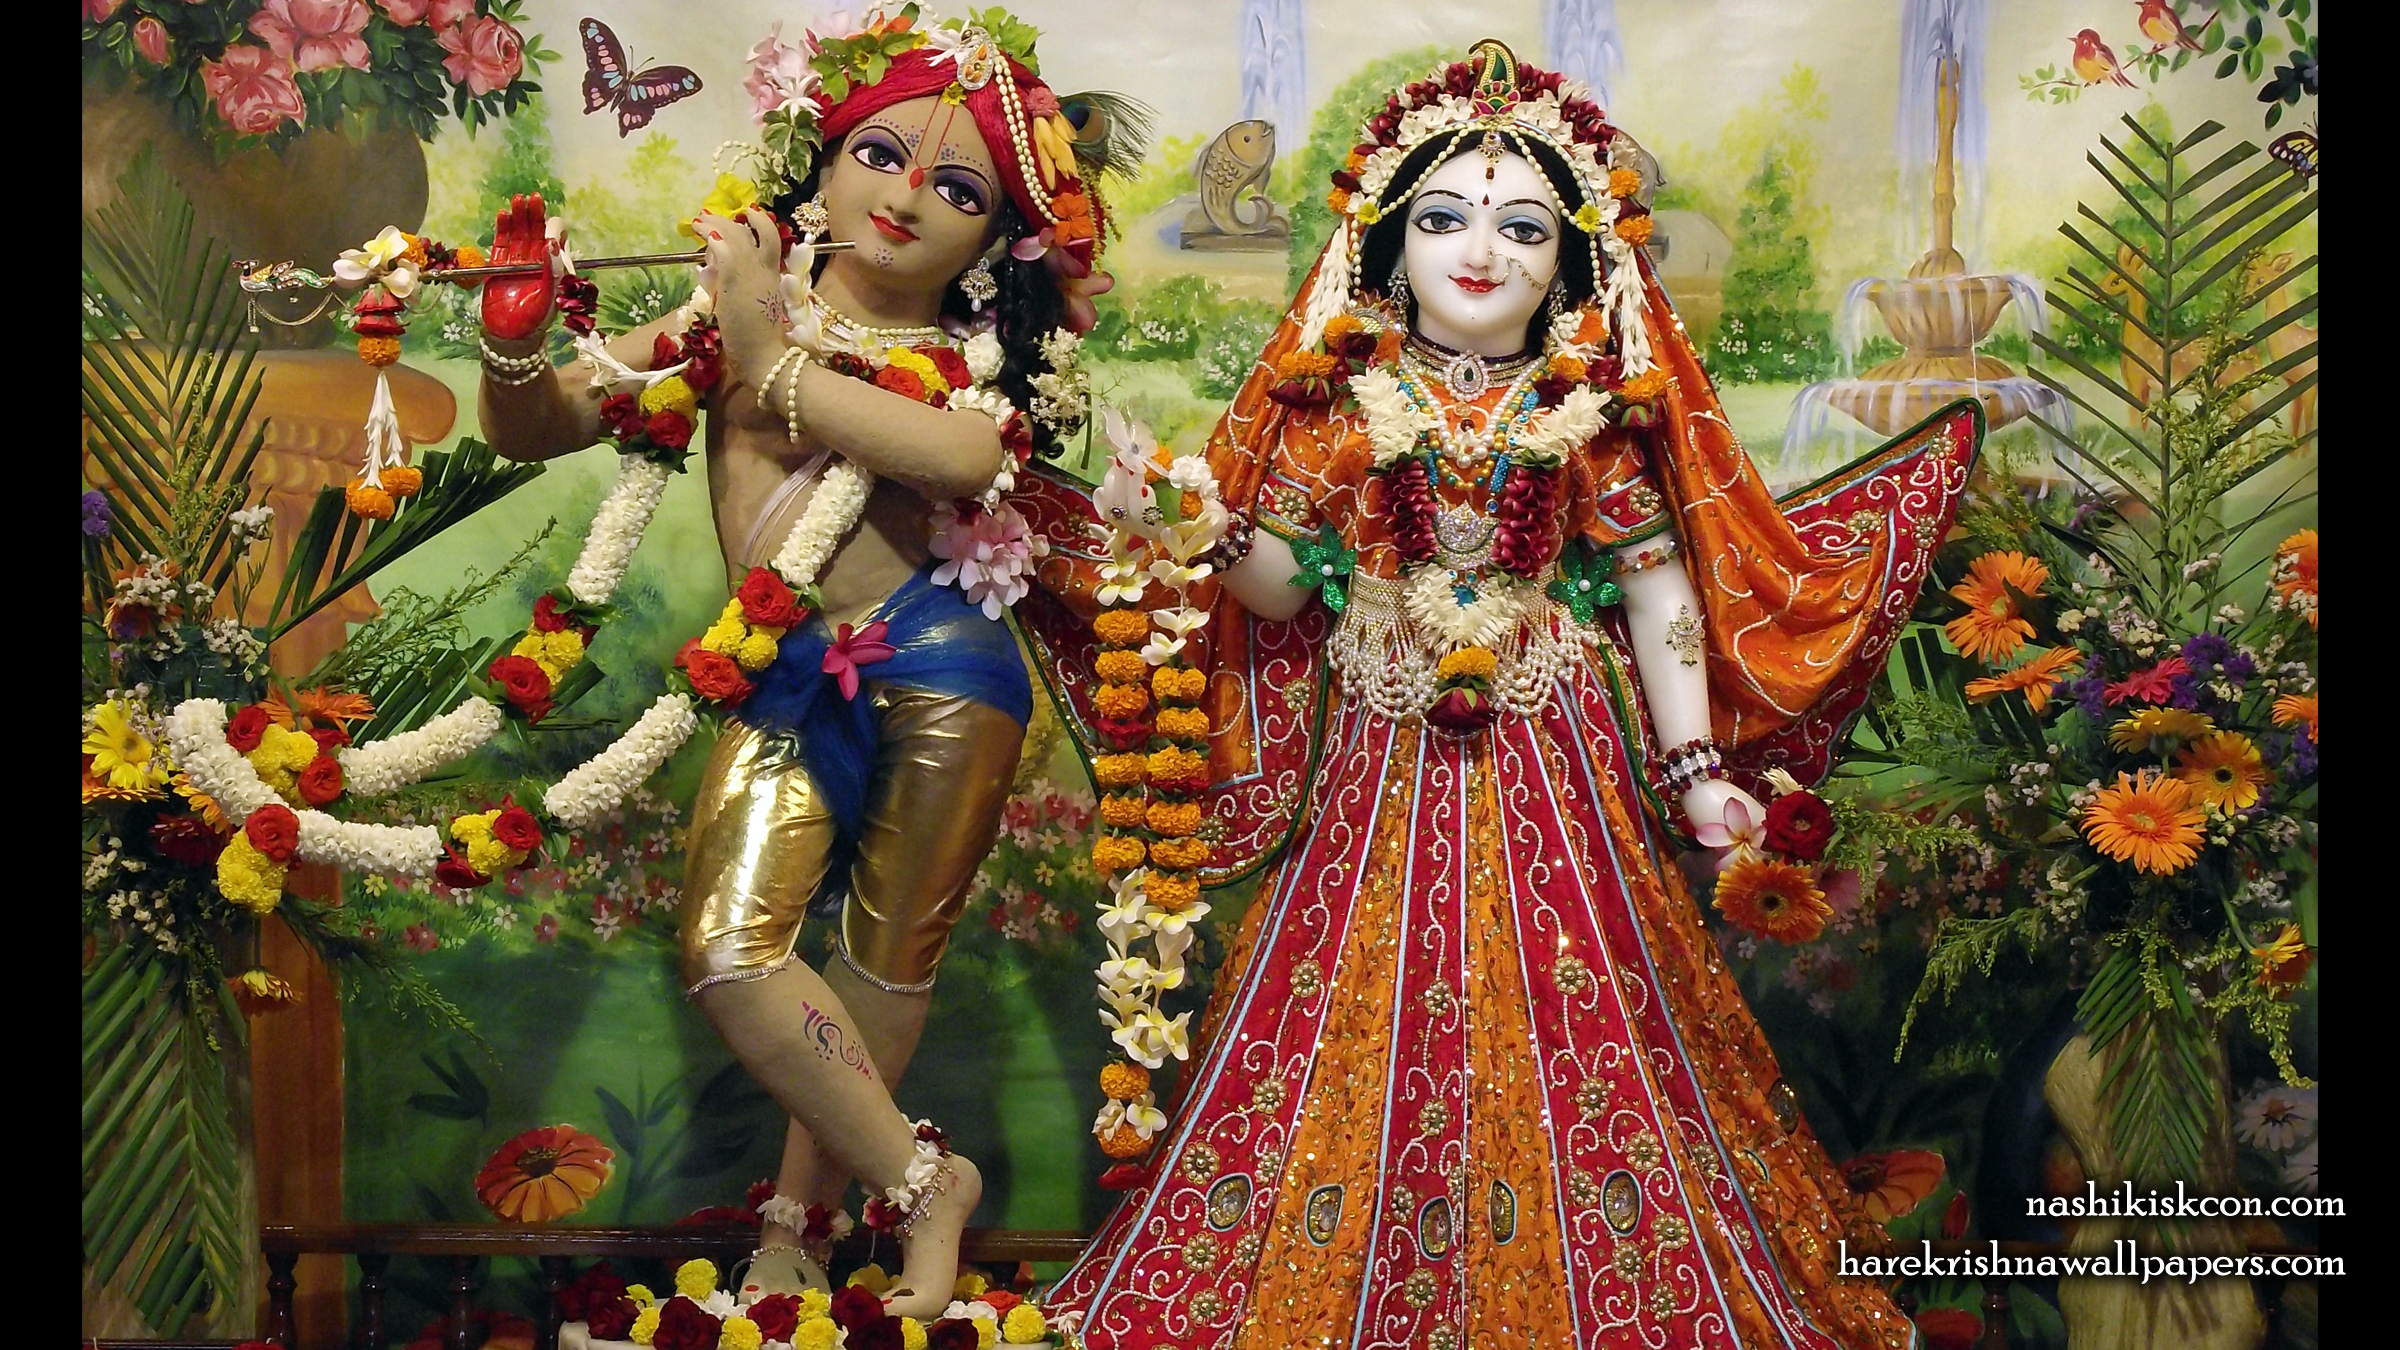 Sri Sri Radha Madan Gopal Wallpaper (011) Size 2400x1350 Download